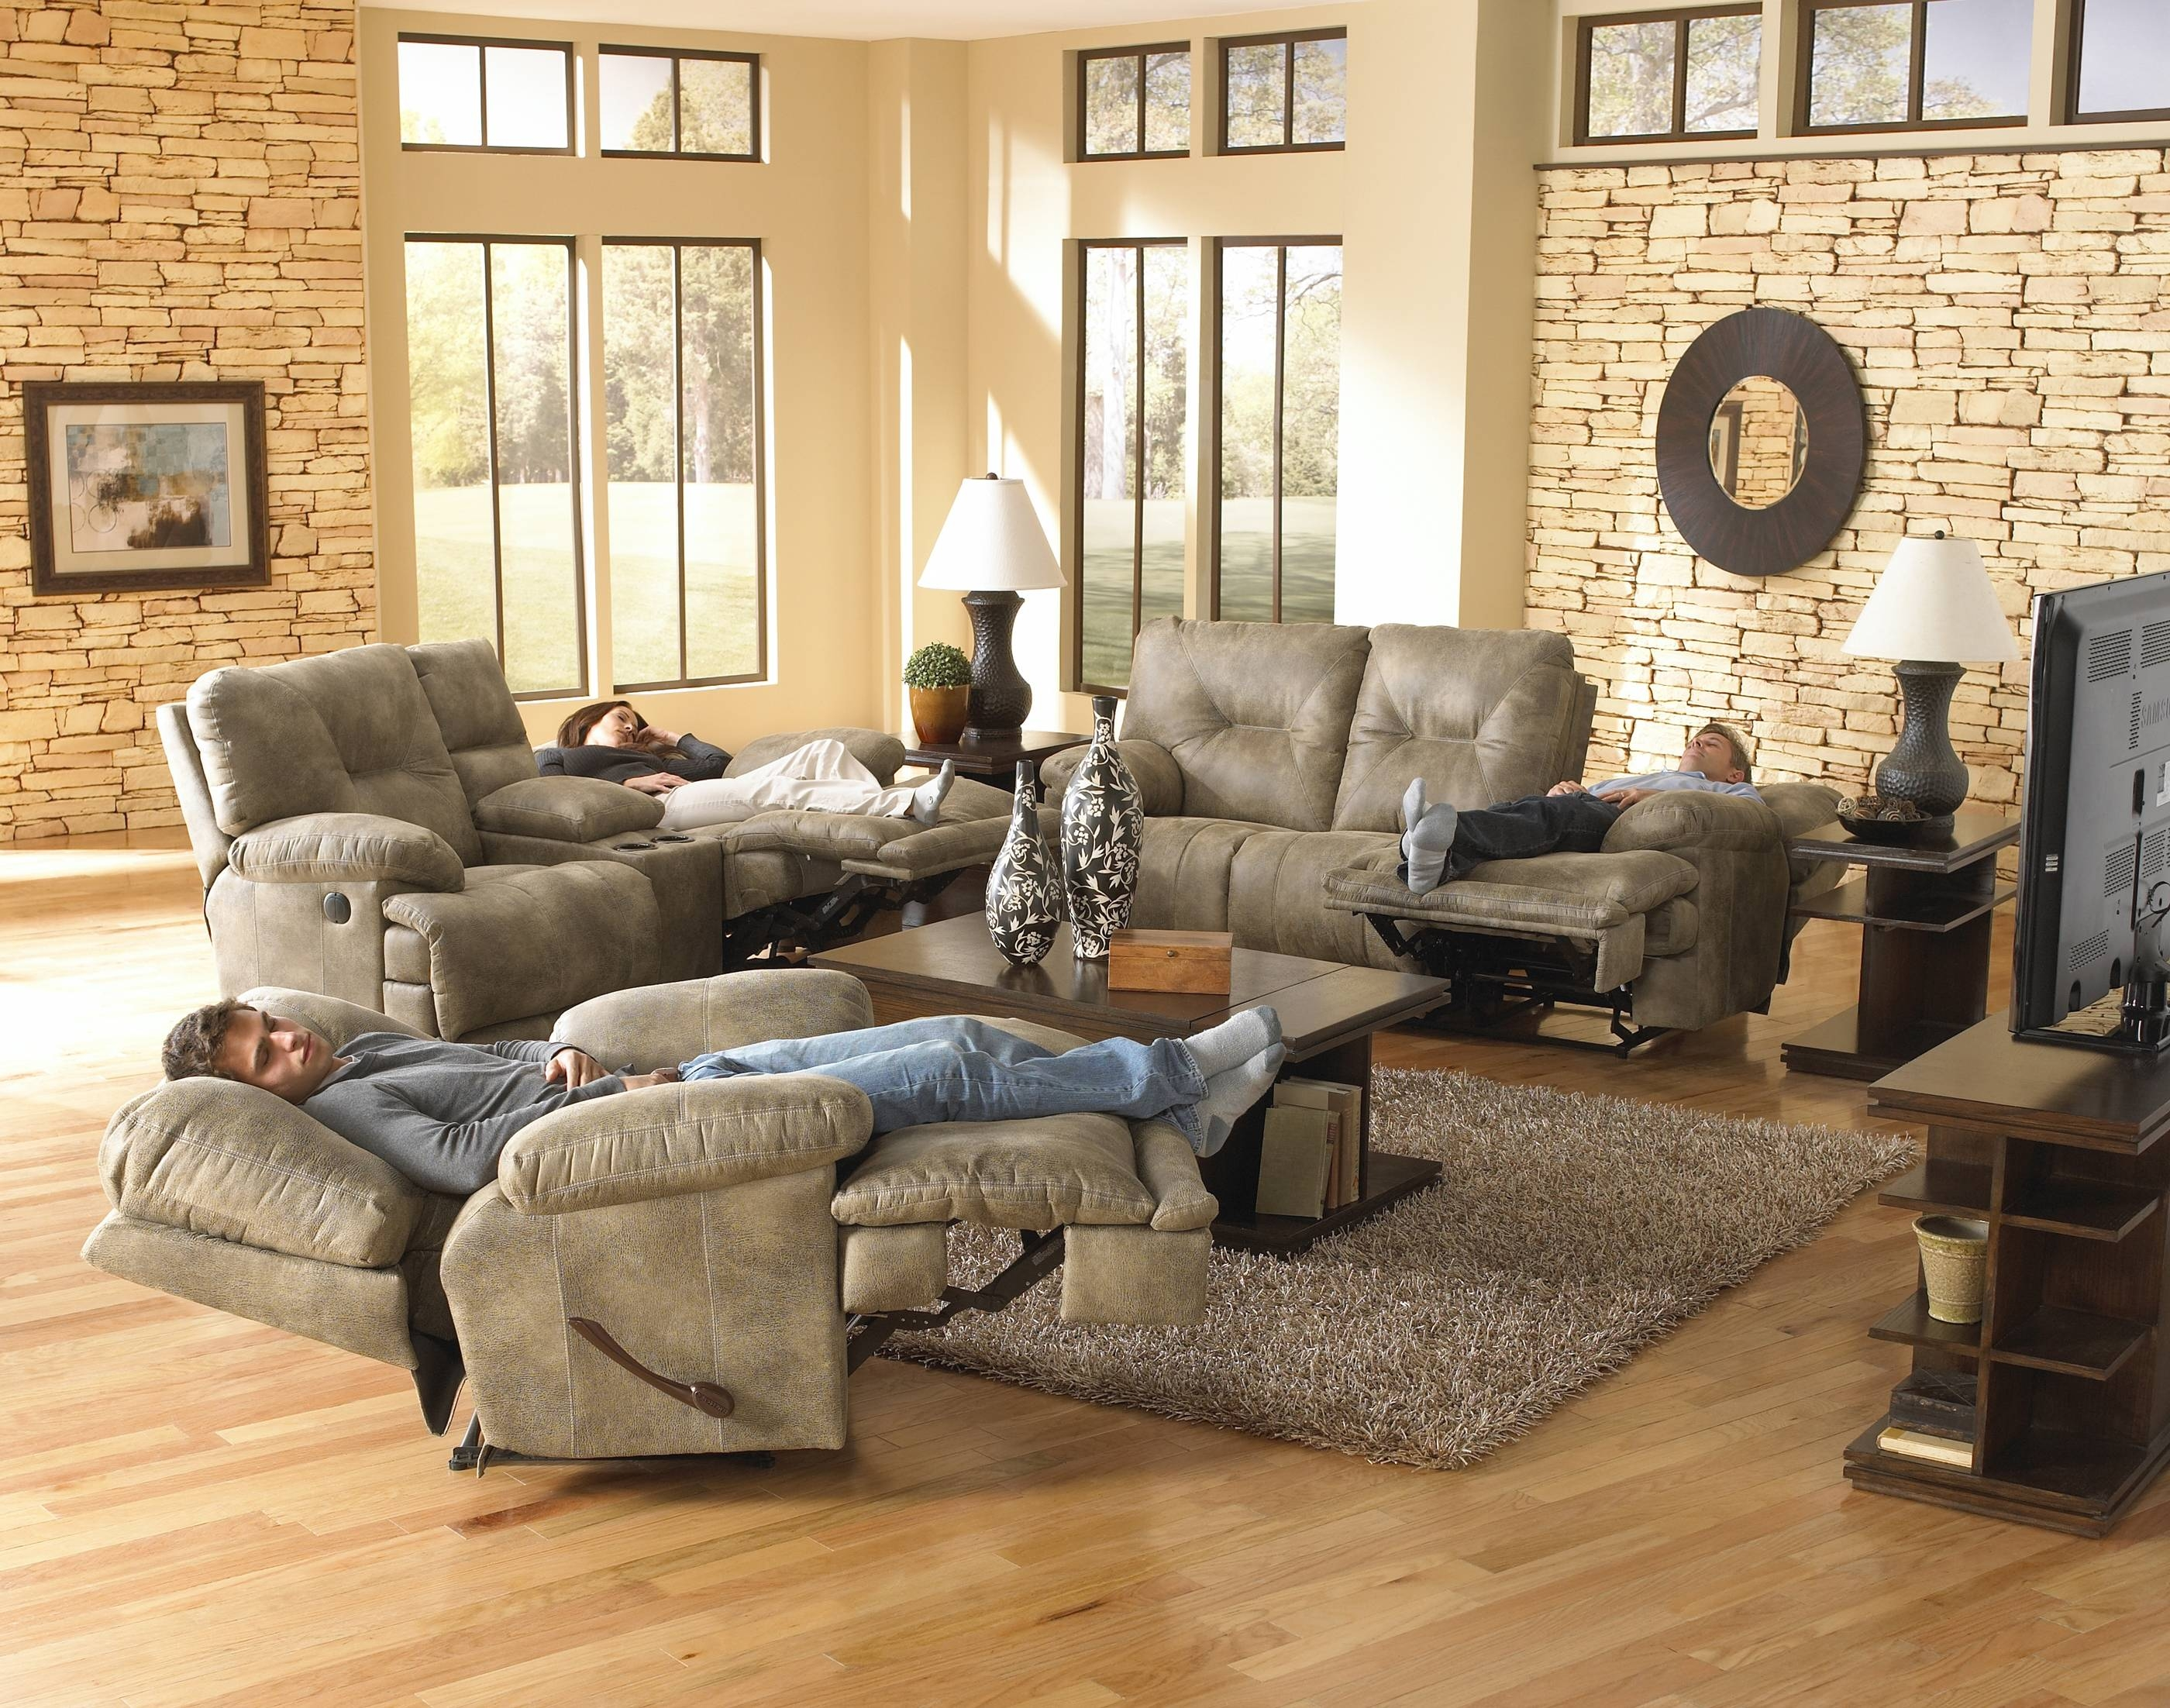 Voyager Reclining Sofa & Loveseatcatnapper pertaining to Catnapper Sofas (Image 15 of 15)